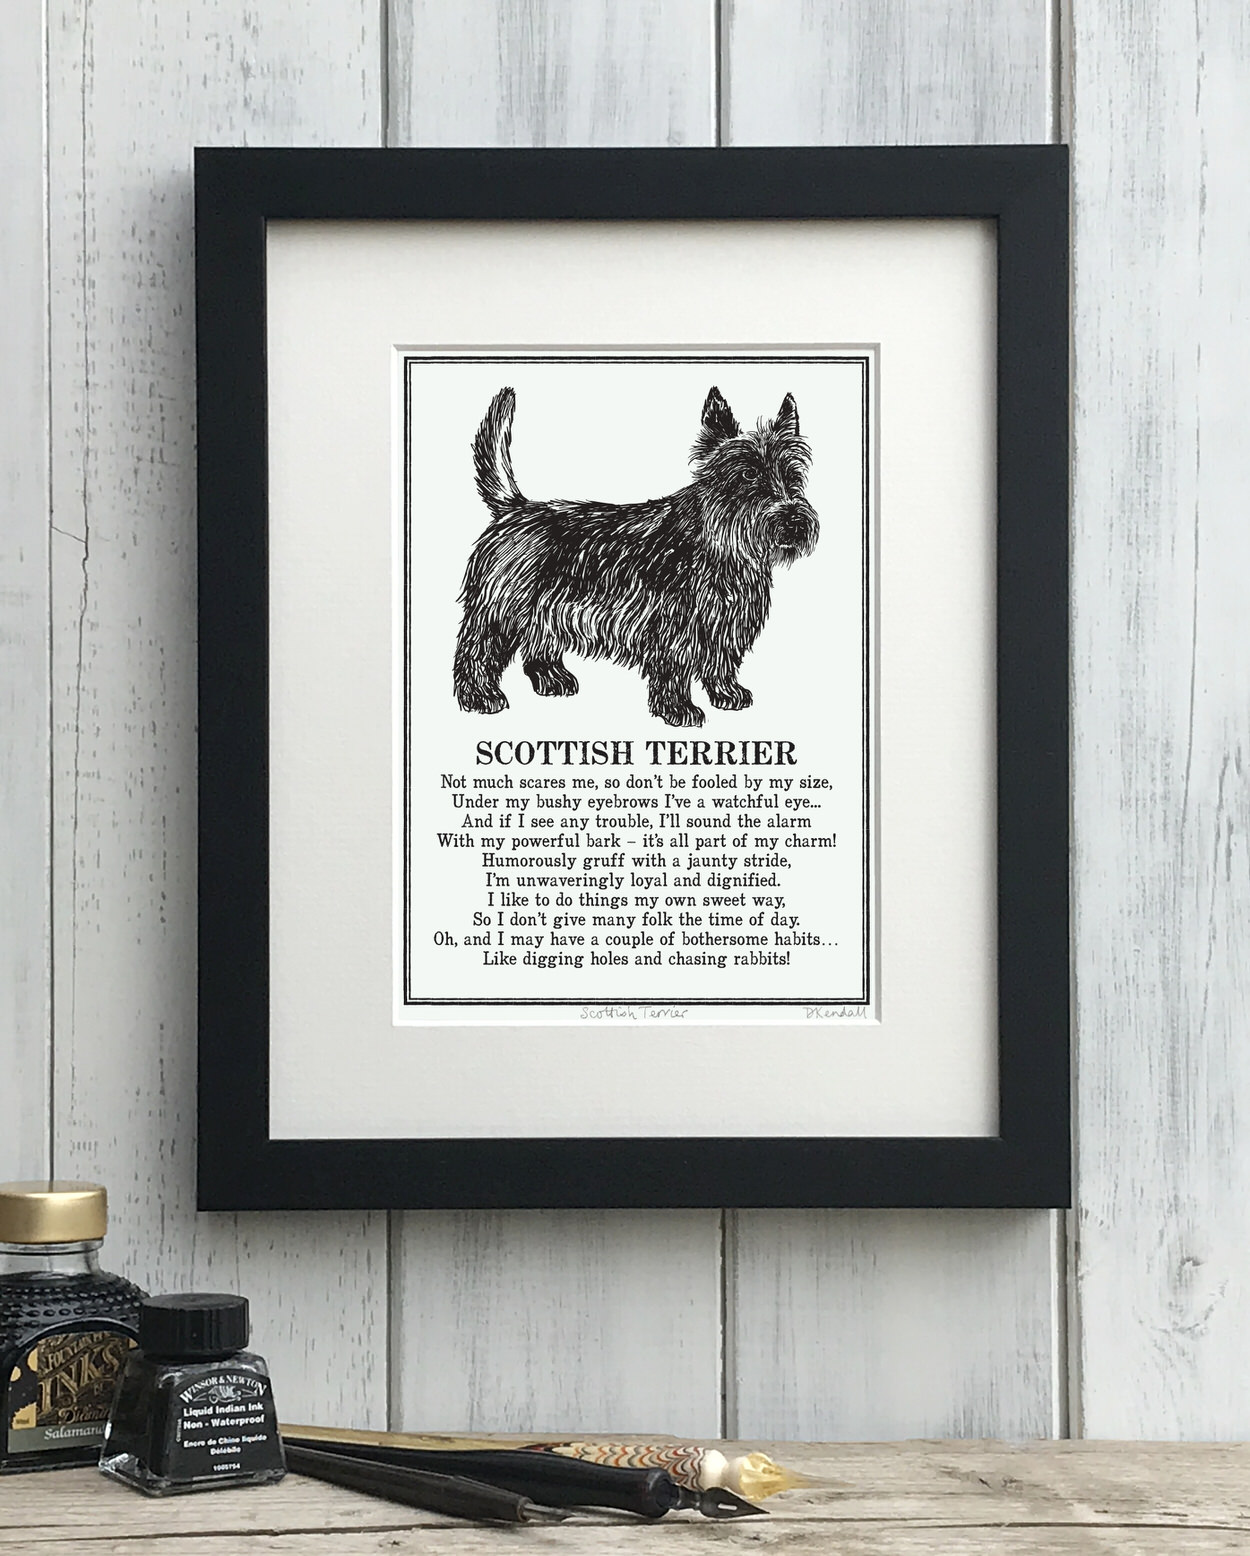 Scottish Terrier print illustrated poem by The Enlightened Hound